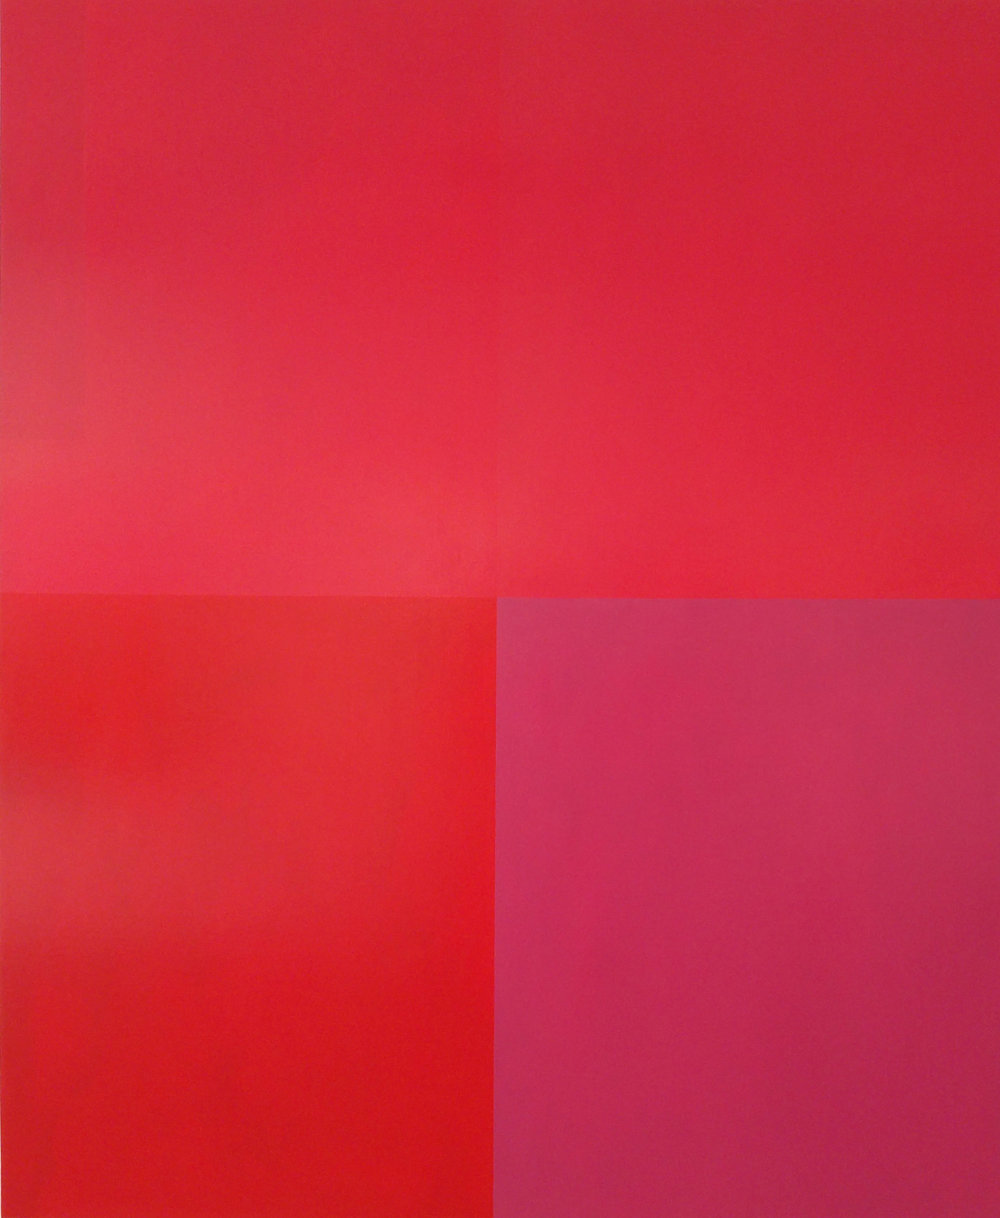 Persephone Never Lied #5, 67 x 55 x 3 inches / 170 x 139 x 8 cm, acrylic on canvas, 2016